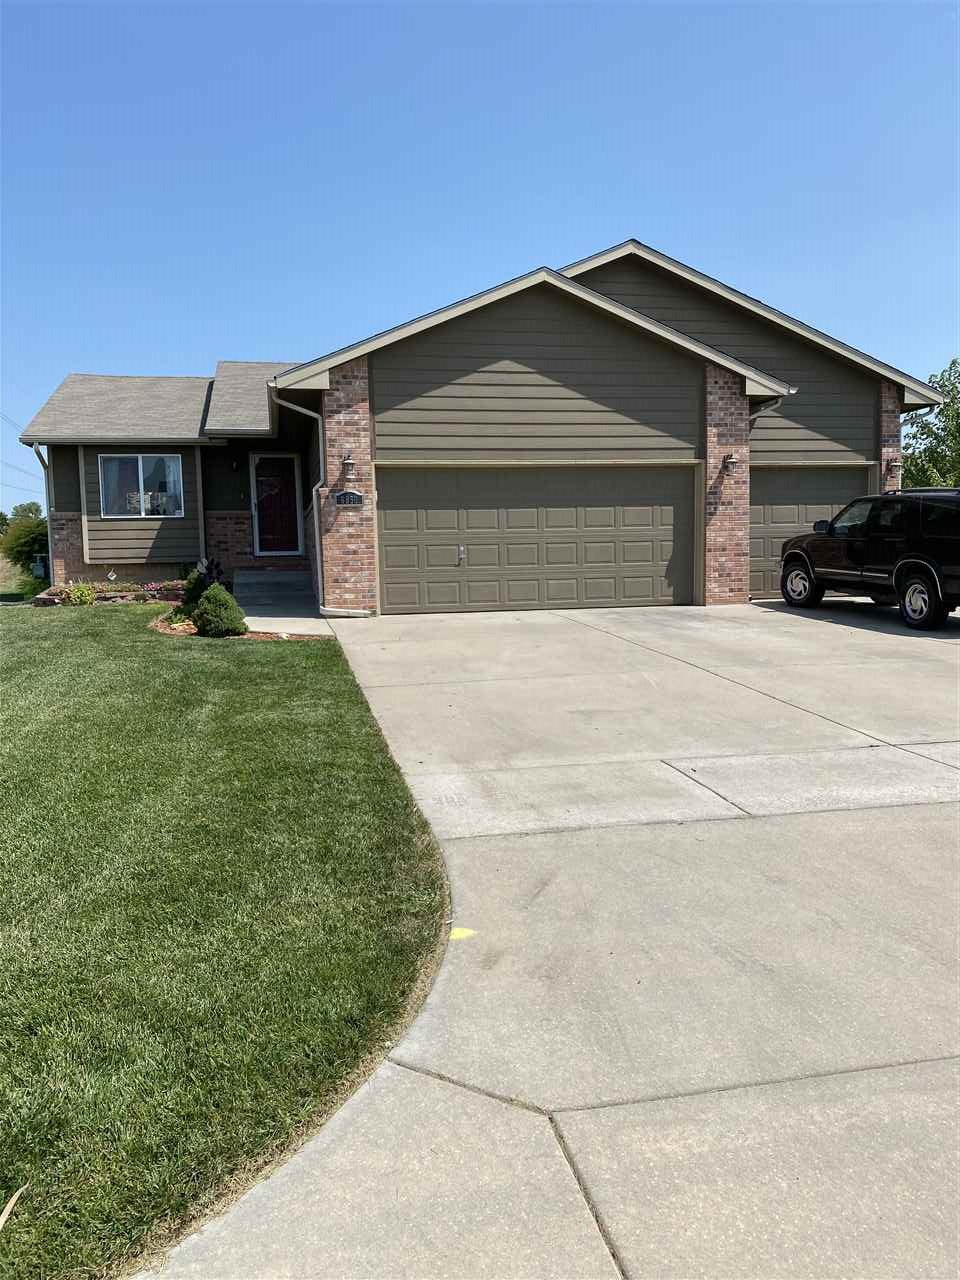 SELLER IS OFFERING $1,500 CREDIT AT CLOSING FOR CARPET/FLOORING UPDATE.  Desirable home located in the High Ridge subdivision, Park City.  VALLEY CENTER SCHOOLS!  House sits on private lot next to a common area.  Very livable 3 bedroom, 2 bath home with open concept kitchen/dining room.  Private master bath adjacent to the master bedroom with his & hers closets.  View of the lake from the living room.  Main floor laundry room.  Unfinished basement ready for buyer's completion of their own design.  Landscaped and sprinkler system.  Seller is offering $1,500 credit at closing for flooring/remodel.  WEEK DAY SHOWINGS ONLY AFTER 5PM.  WEEKEND SHOWINGS WITH 1 HOUR NOTICE.